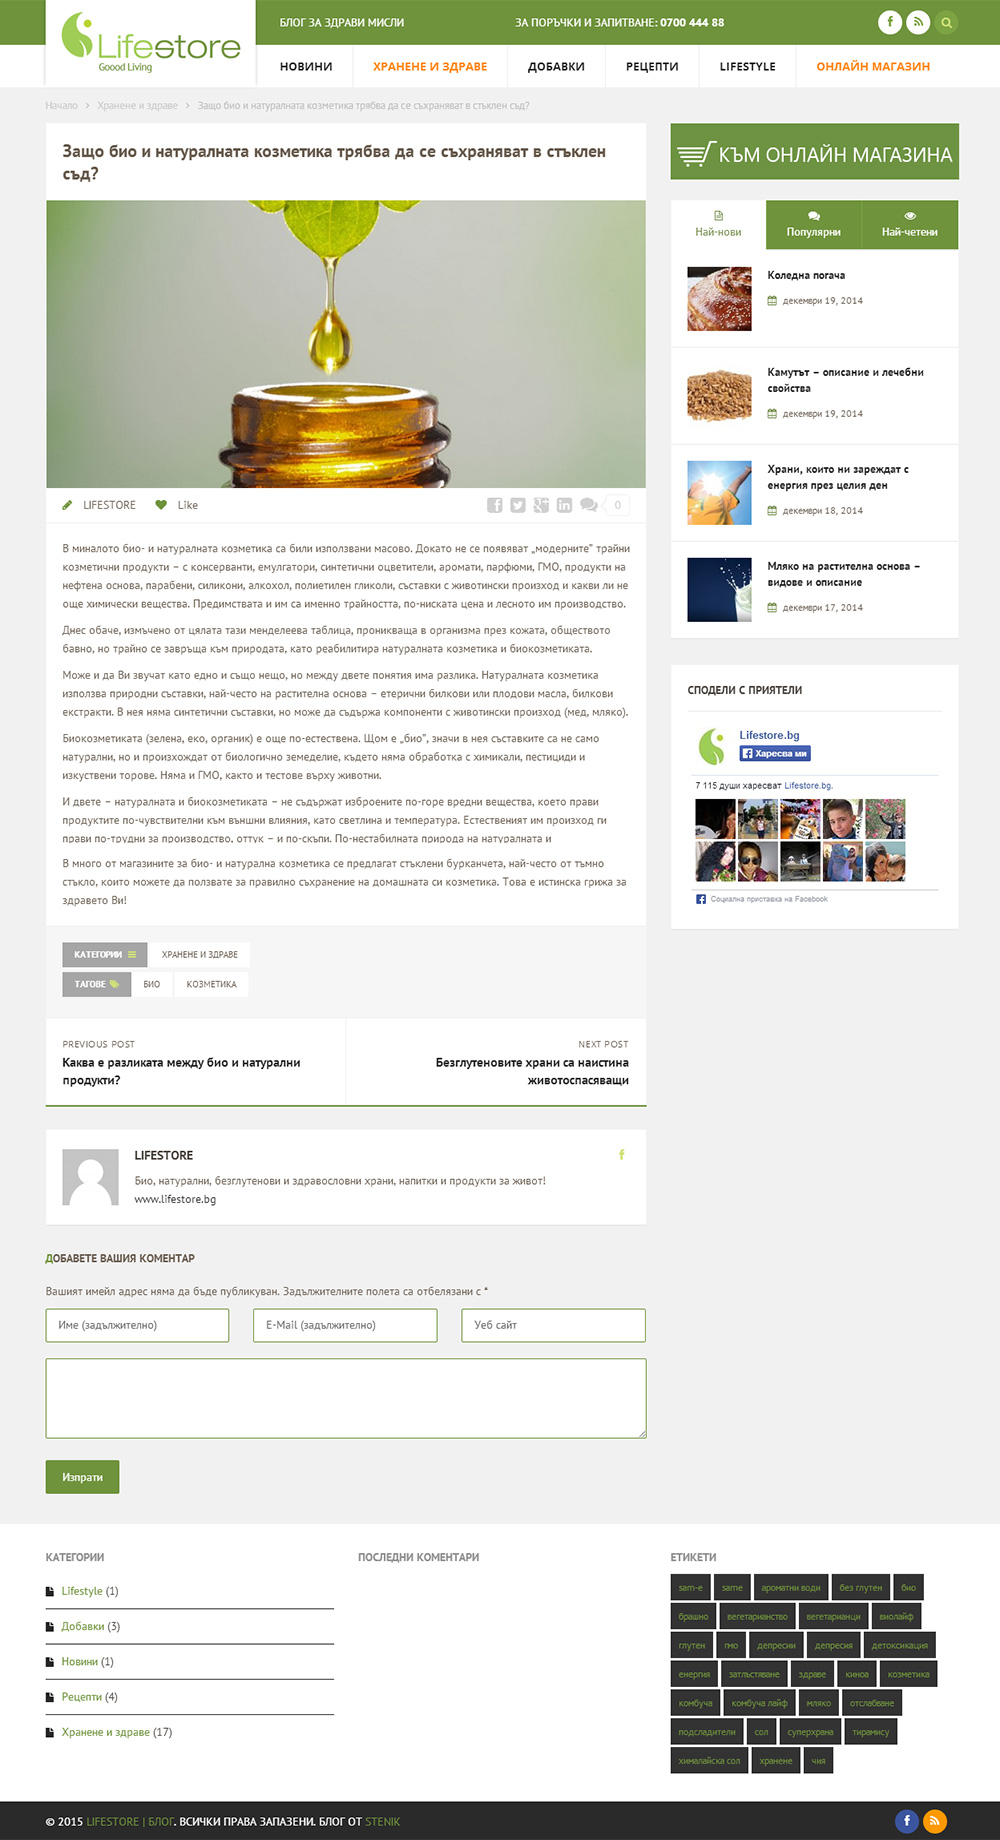 Blog for Lifestore.bg, Lifestore.bg - Blogs, Stenik, WordPress